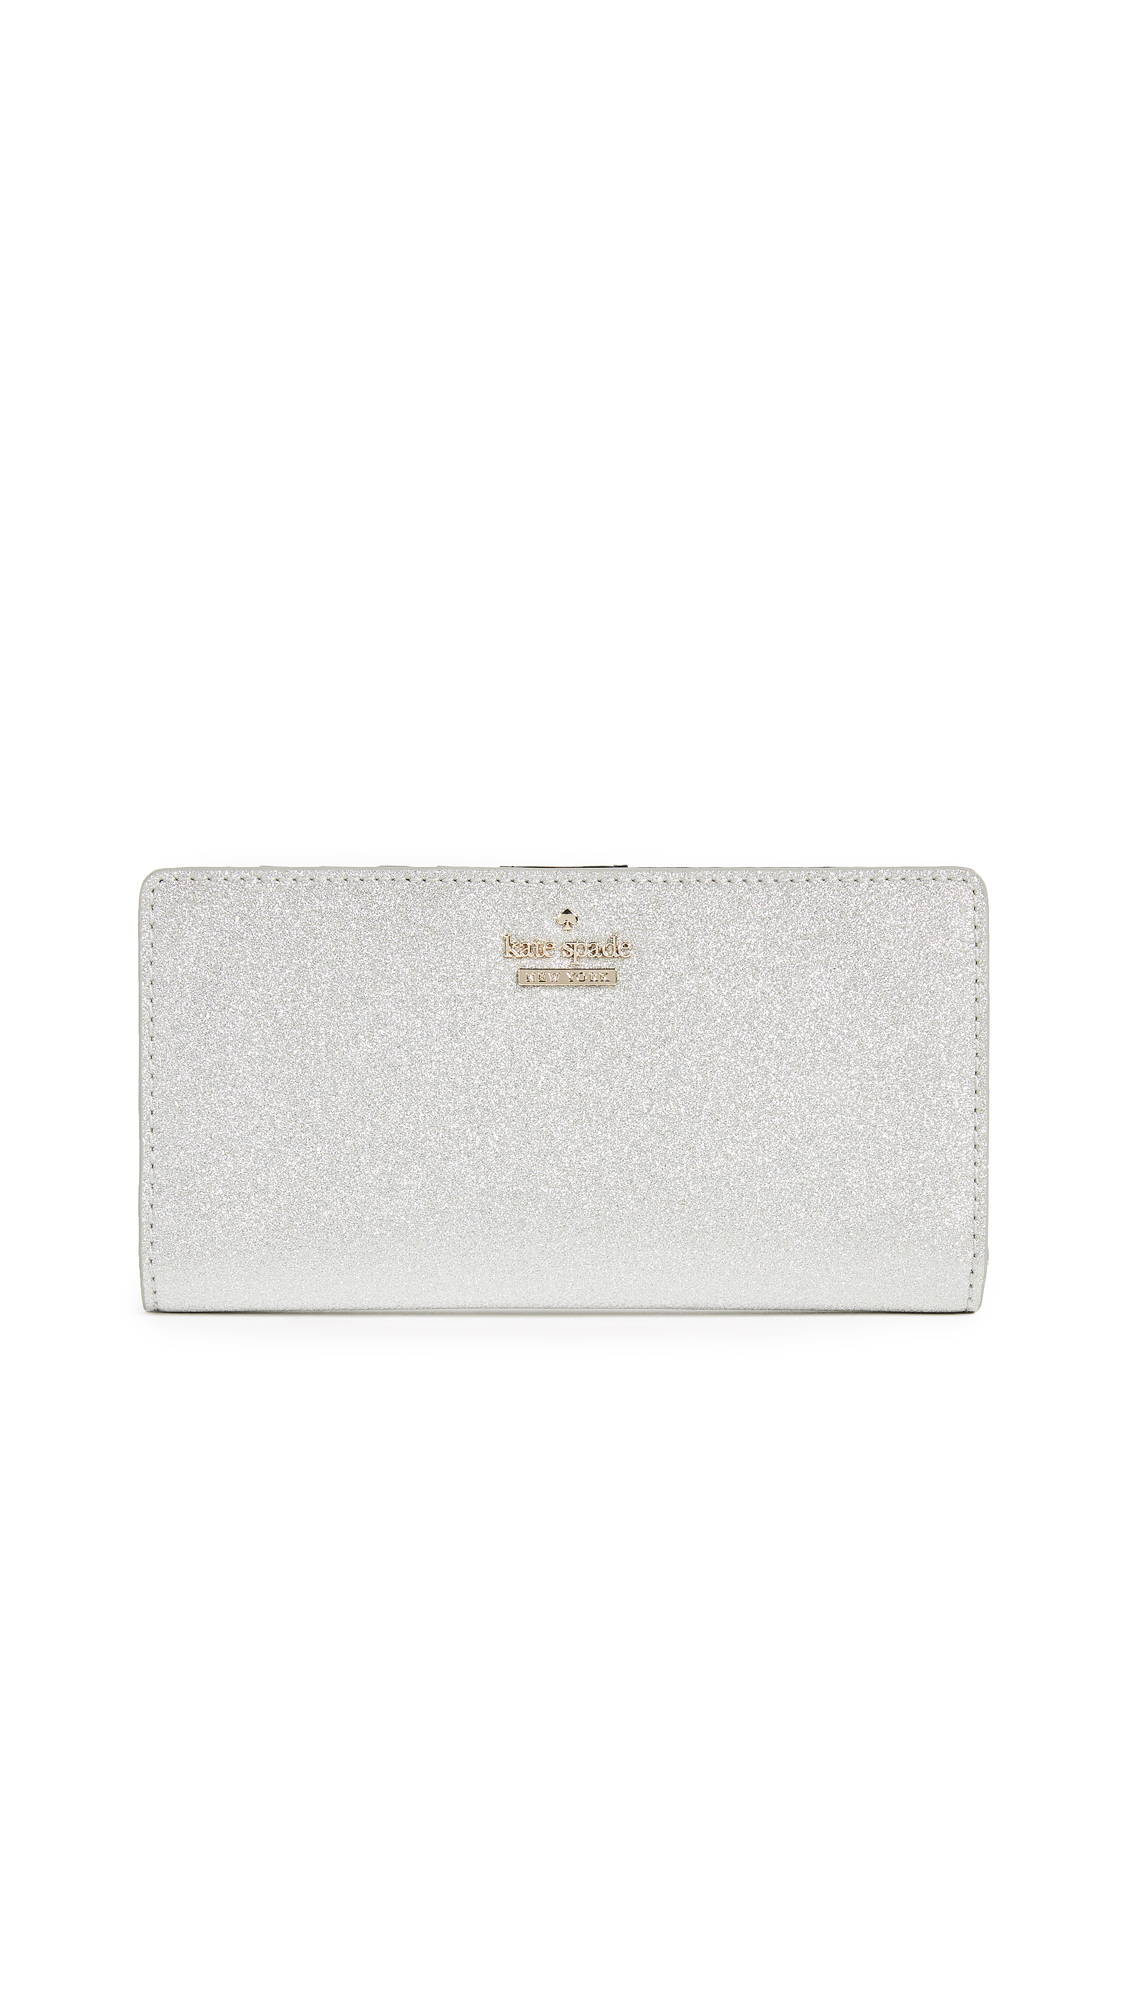 Kate Spade New York Burgess Court Stacy Wallet - Silver